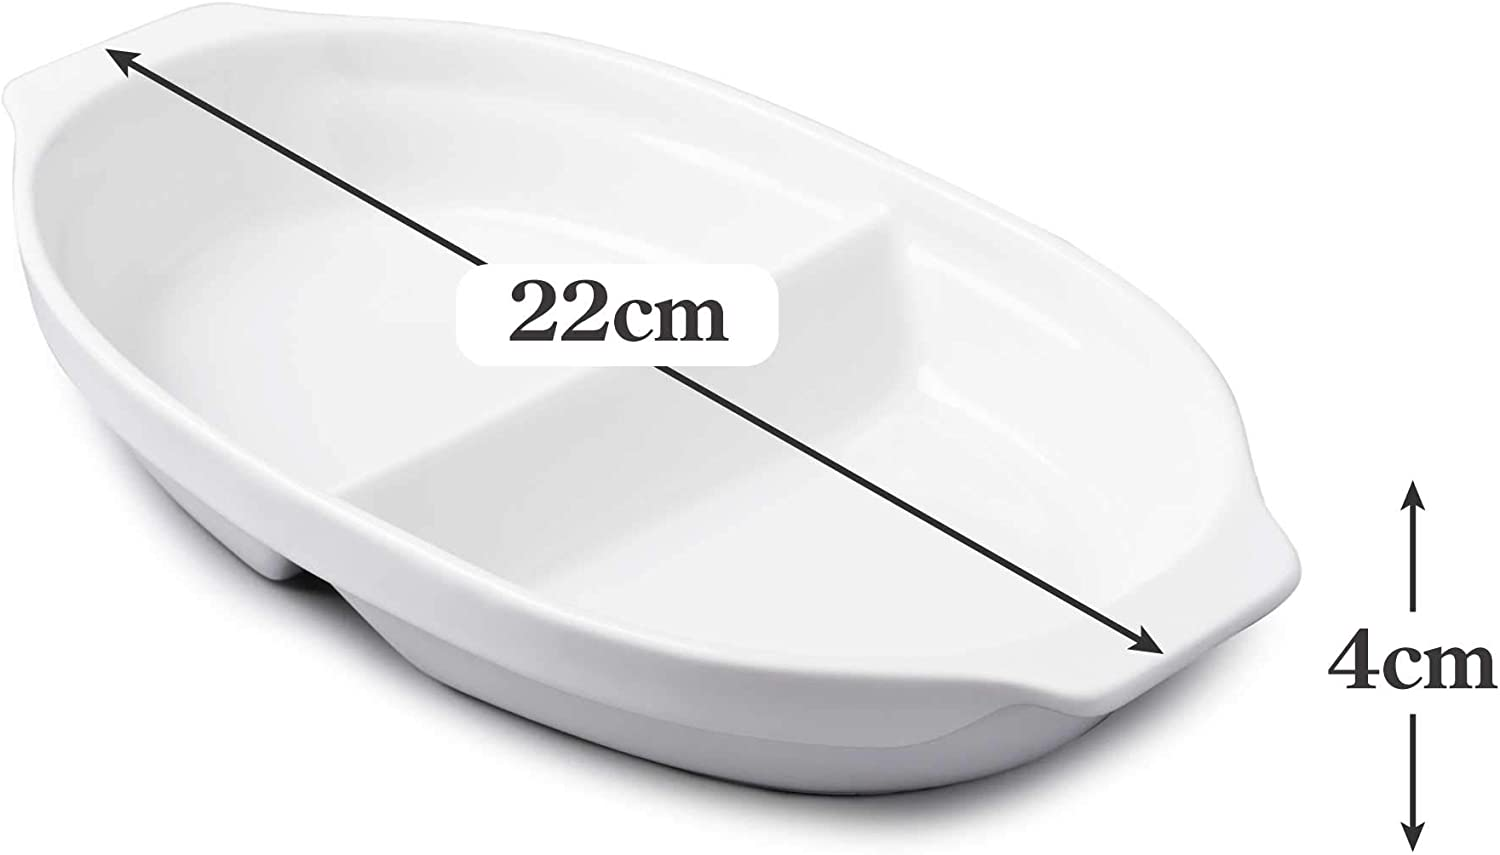 White WM Bartleet /& Sons 1750 T397 Traditional Porcelain Small Divided Vegetable and Sides Serving Dish 22cm